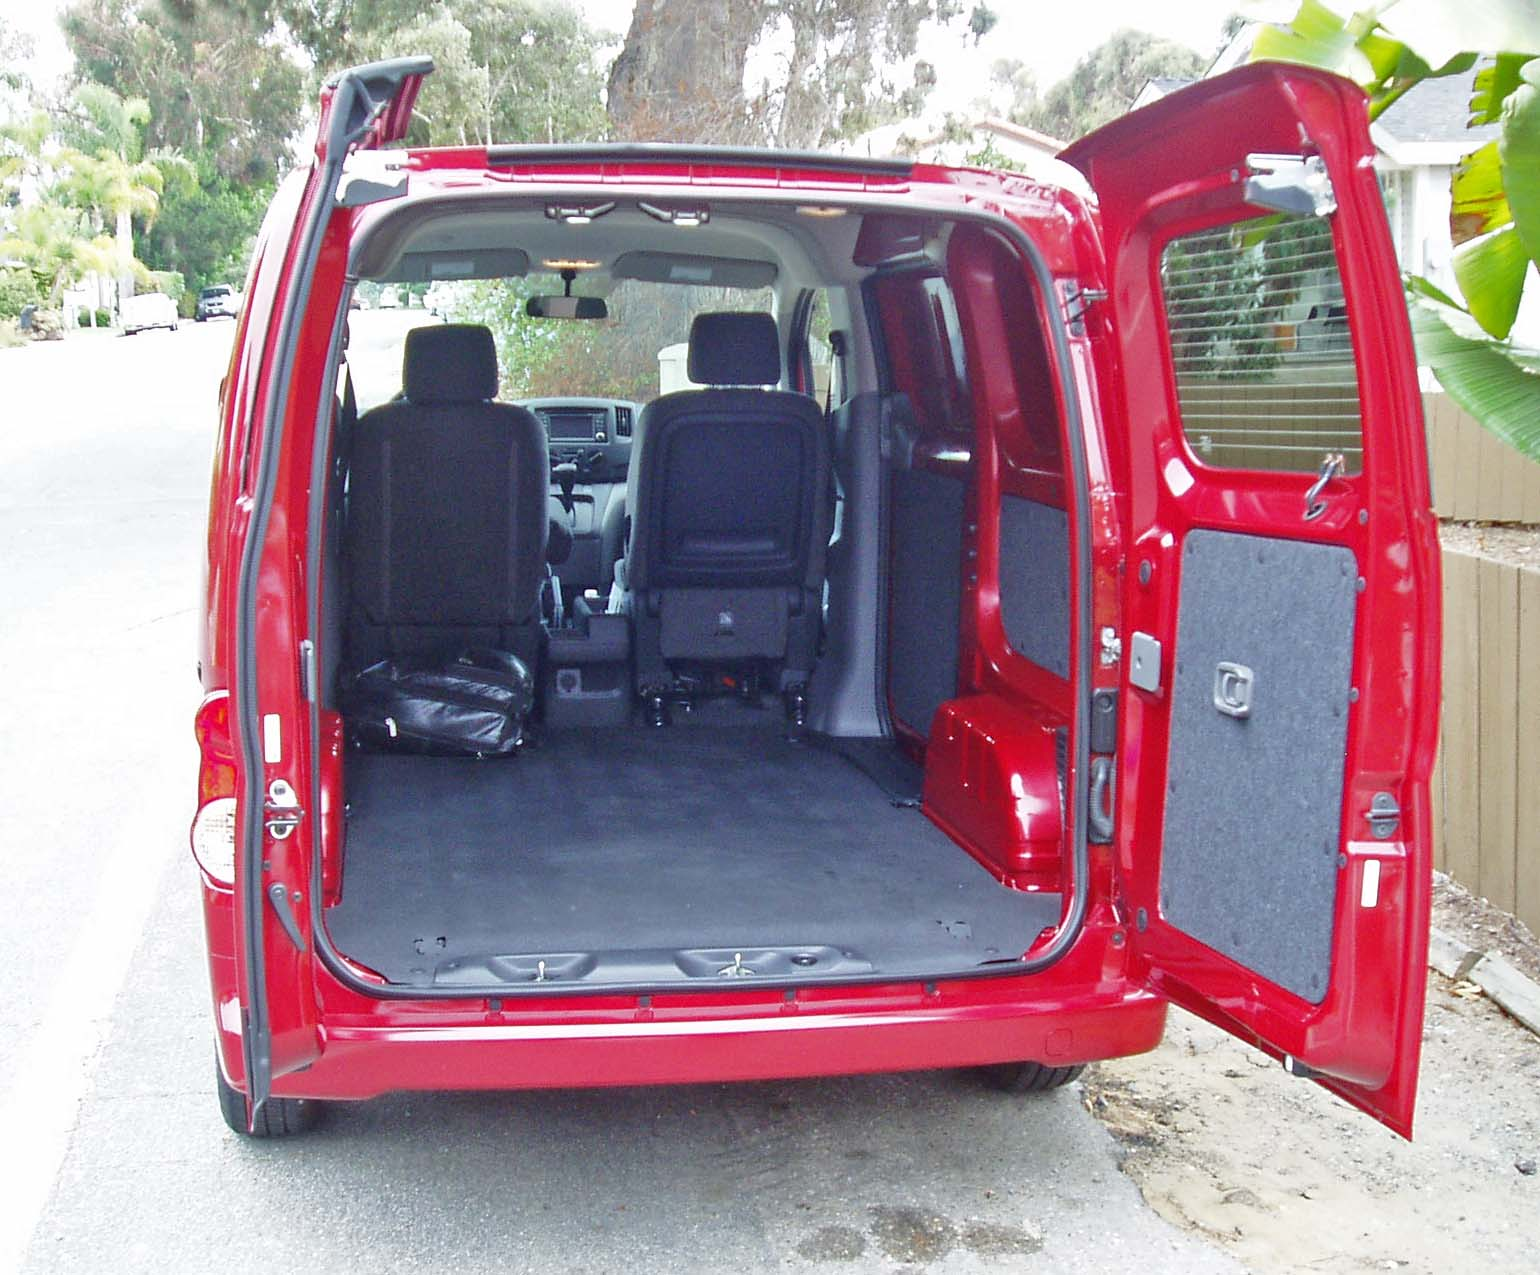 2013 Nissan Nv200 Compact Cargo Van Test Drive Our Auto